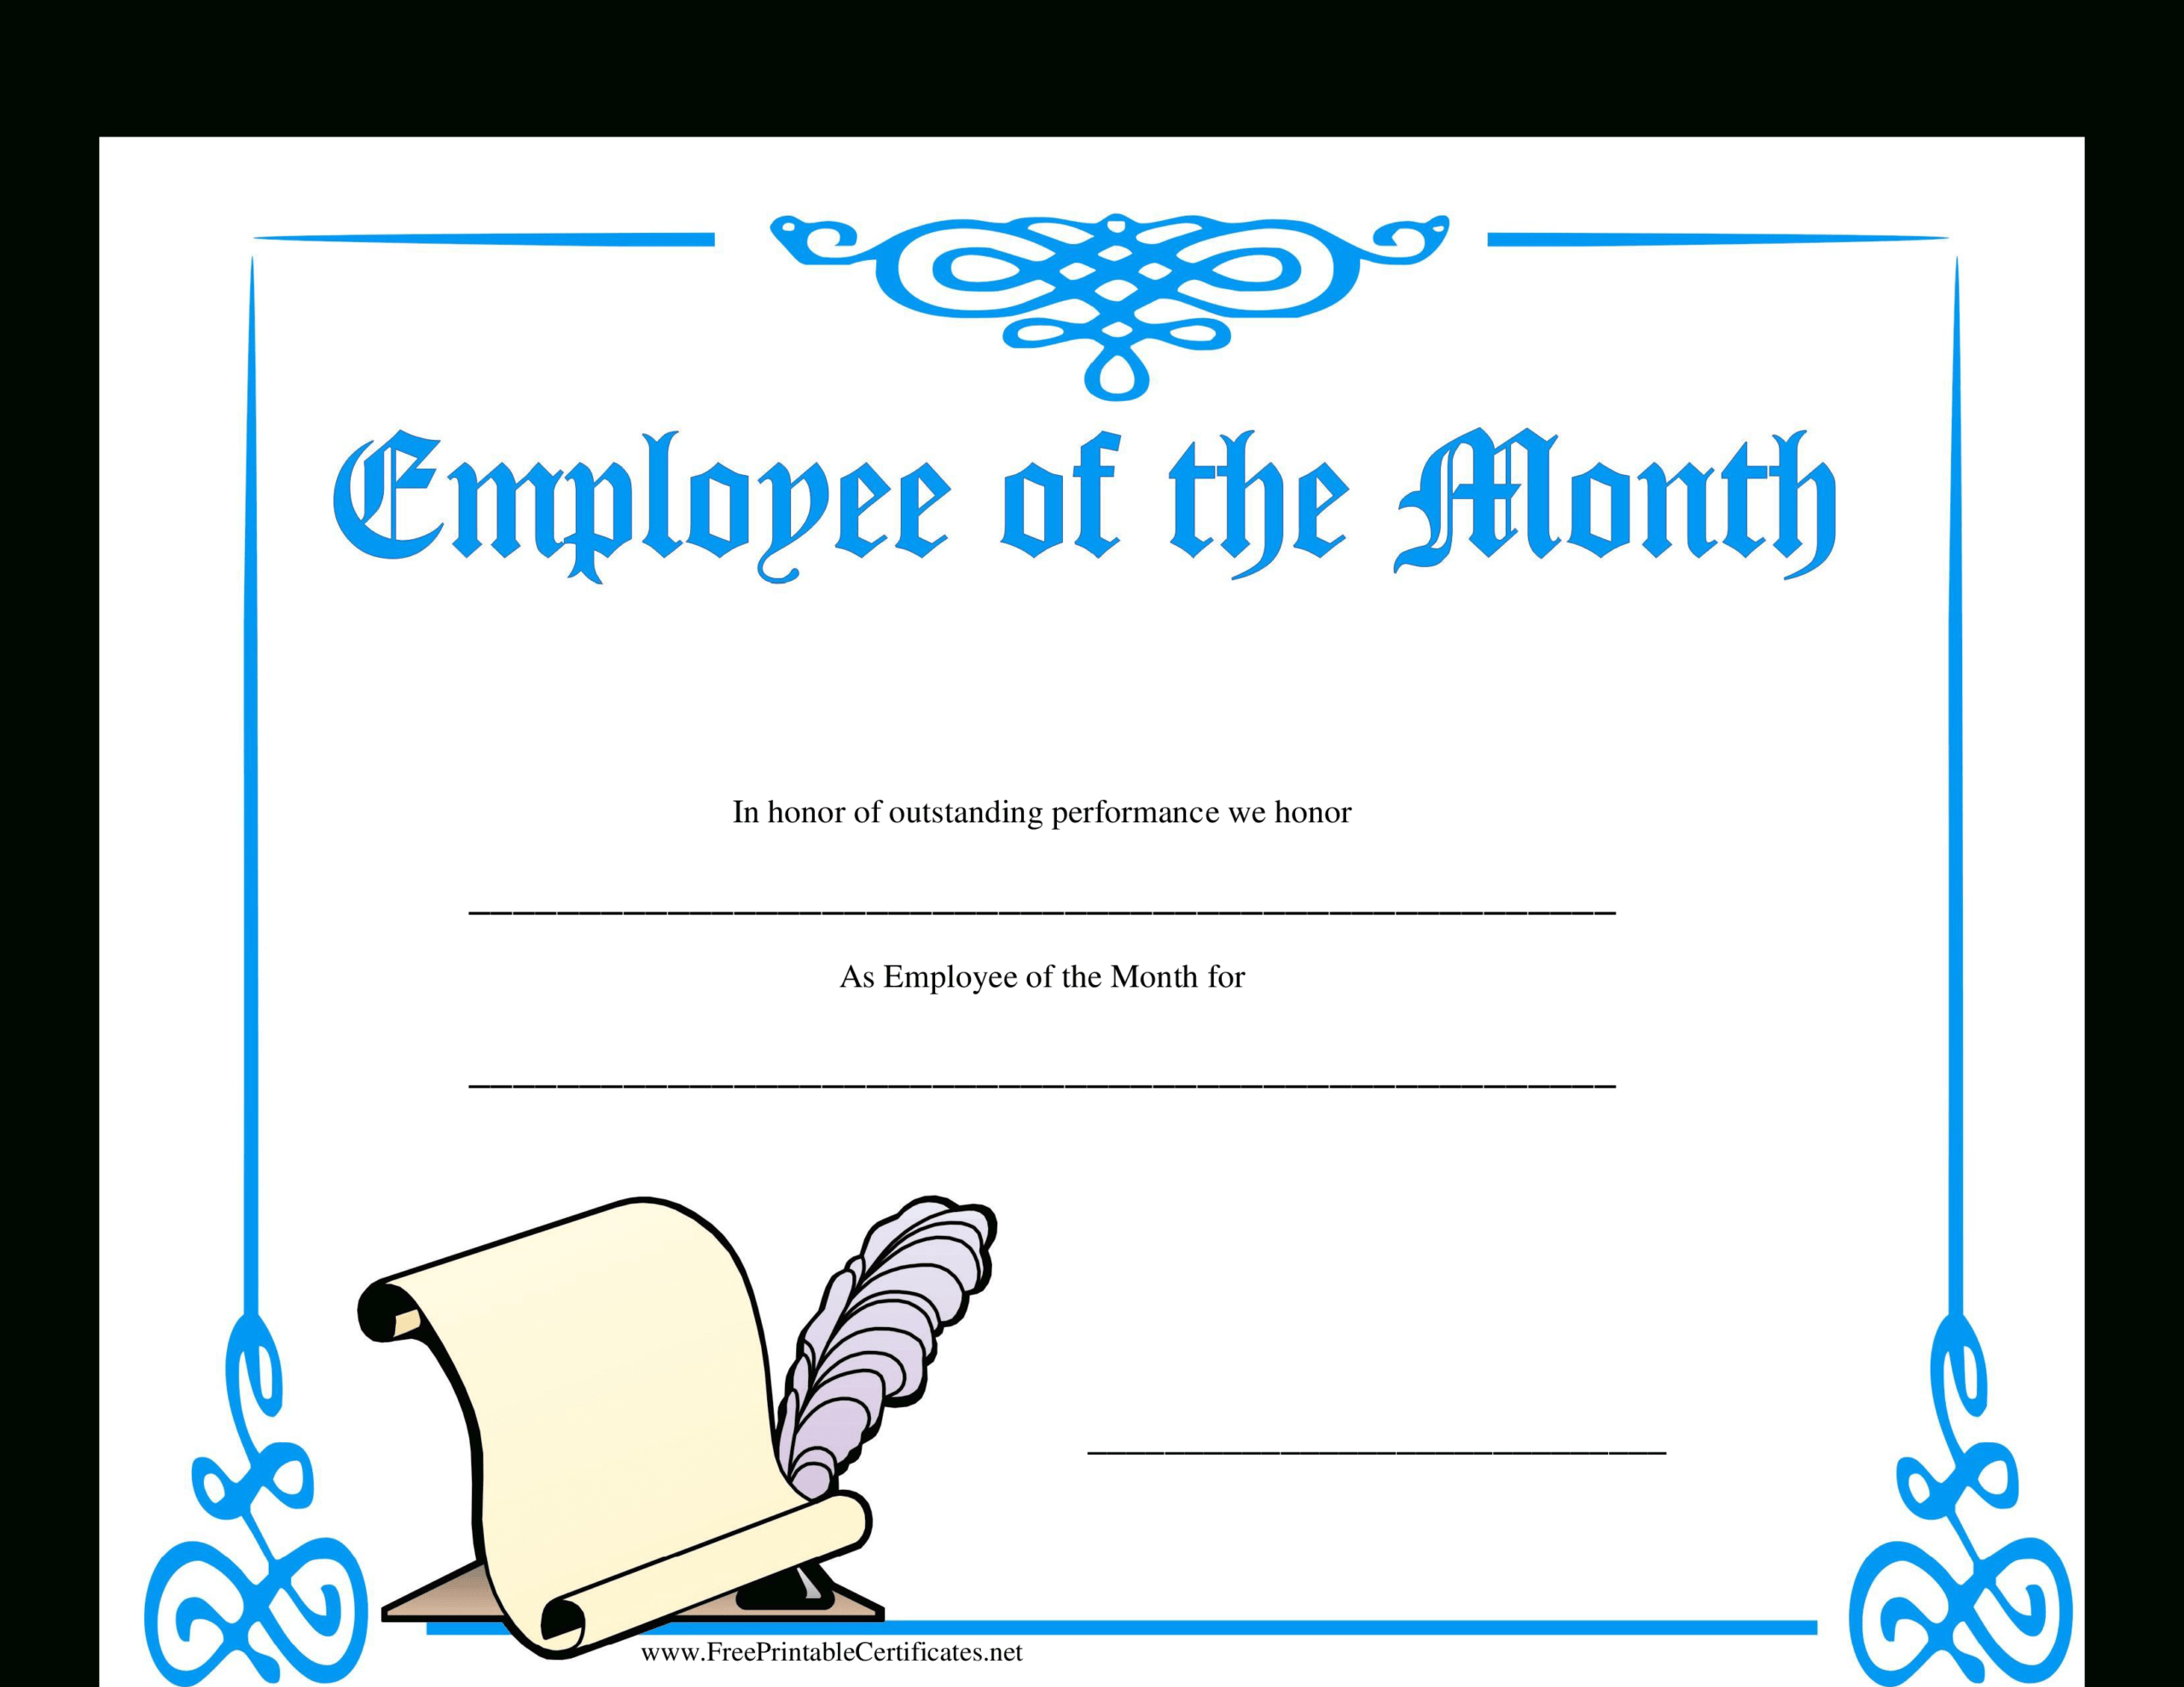 Employee Of The Month Certificate | Templates At Pertaining To Employee Of The Month Certificate Template With Picture